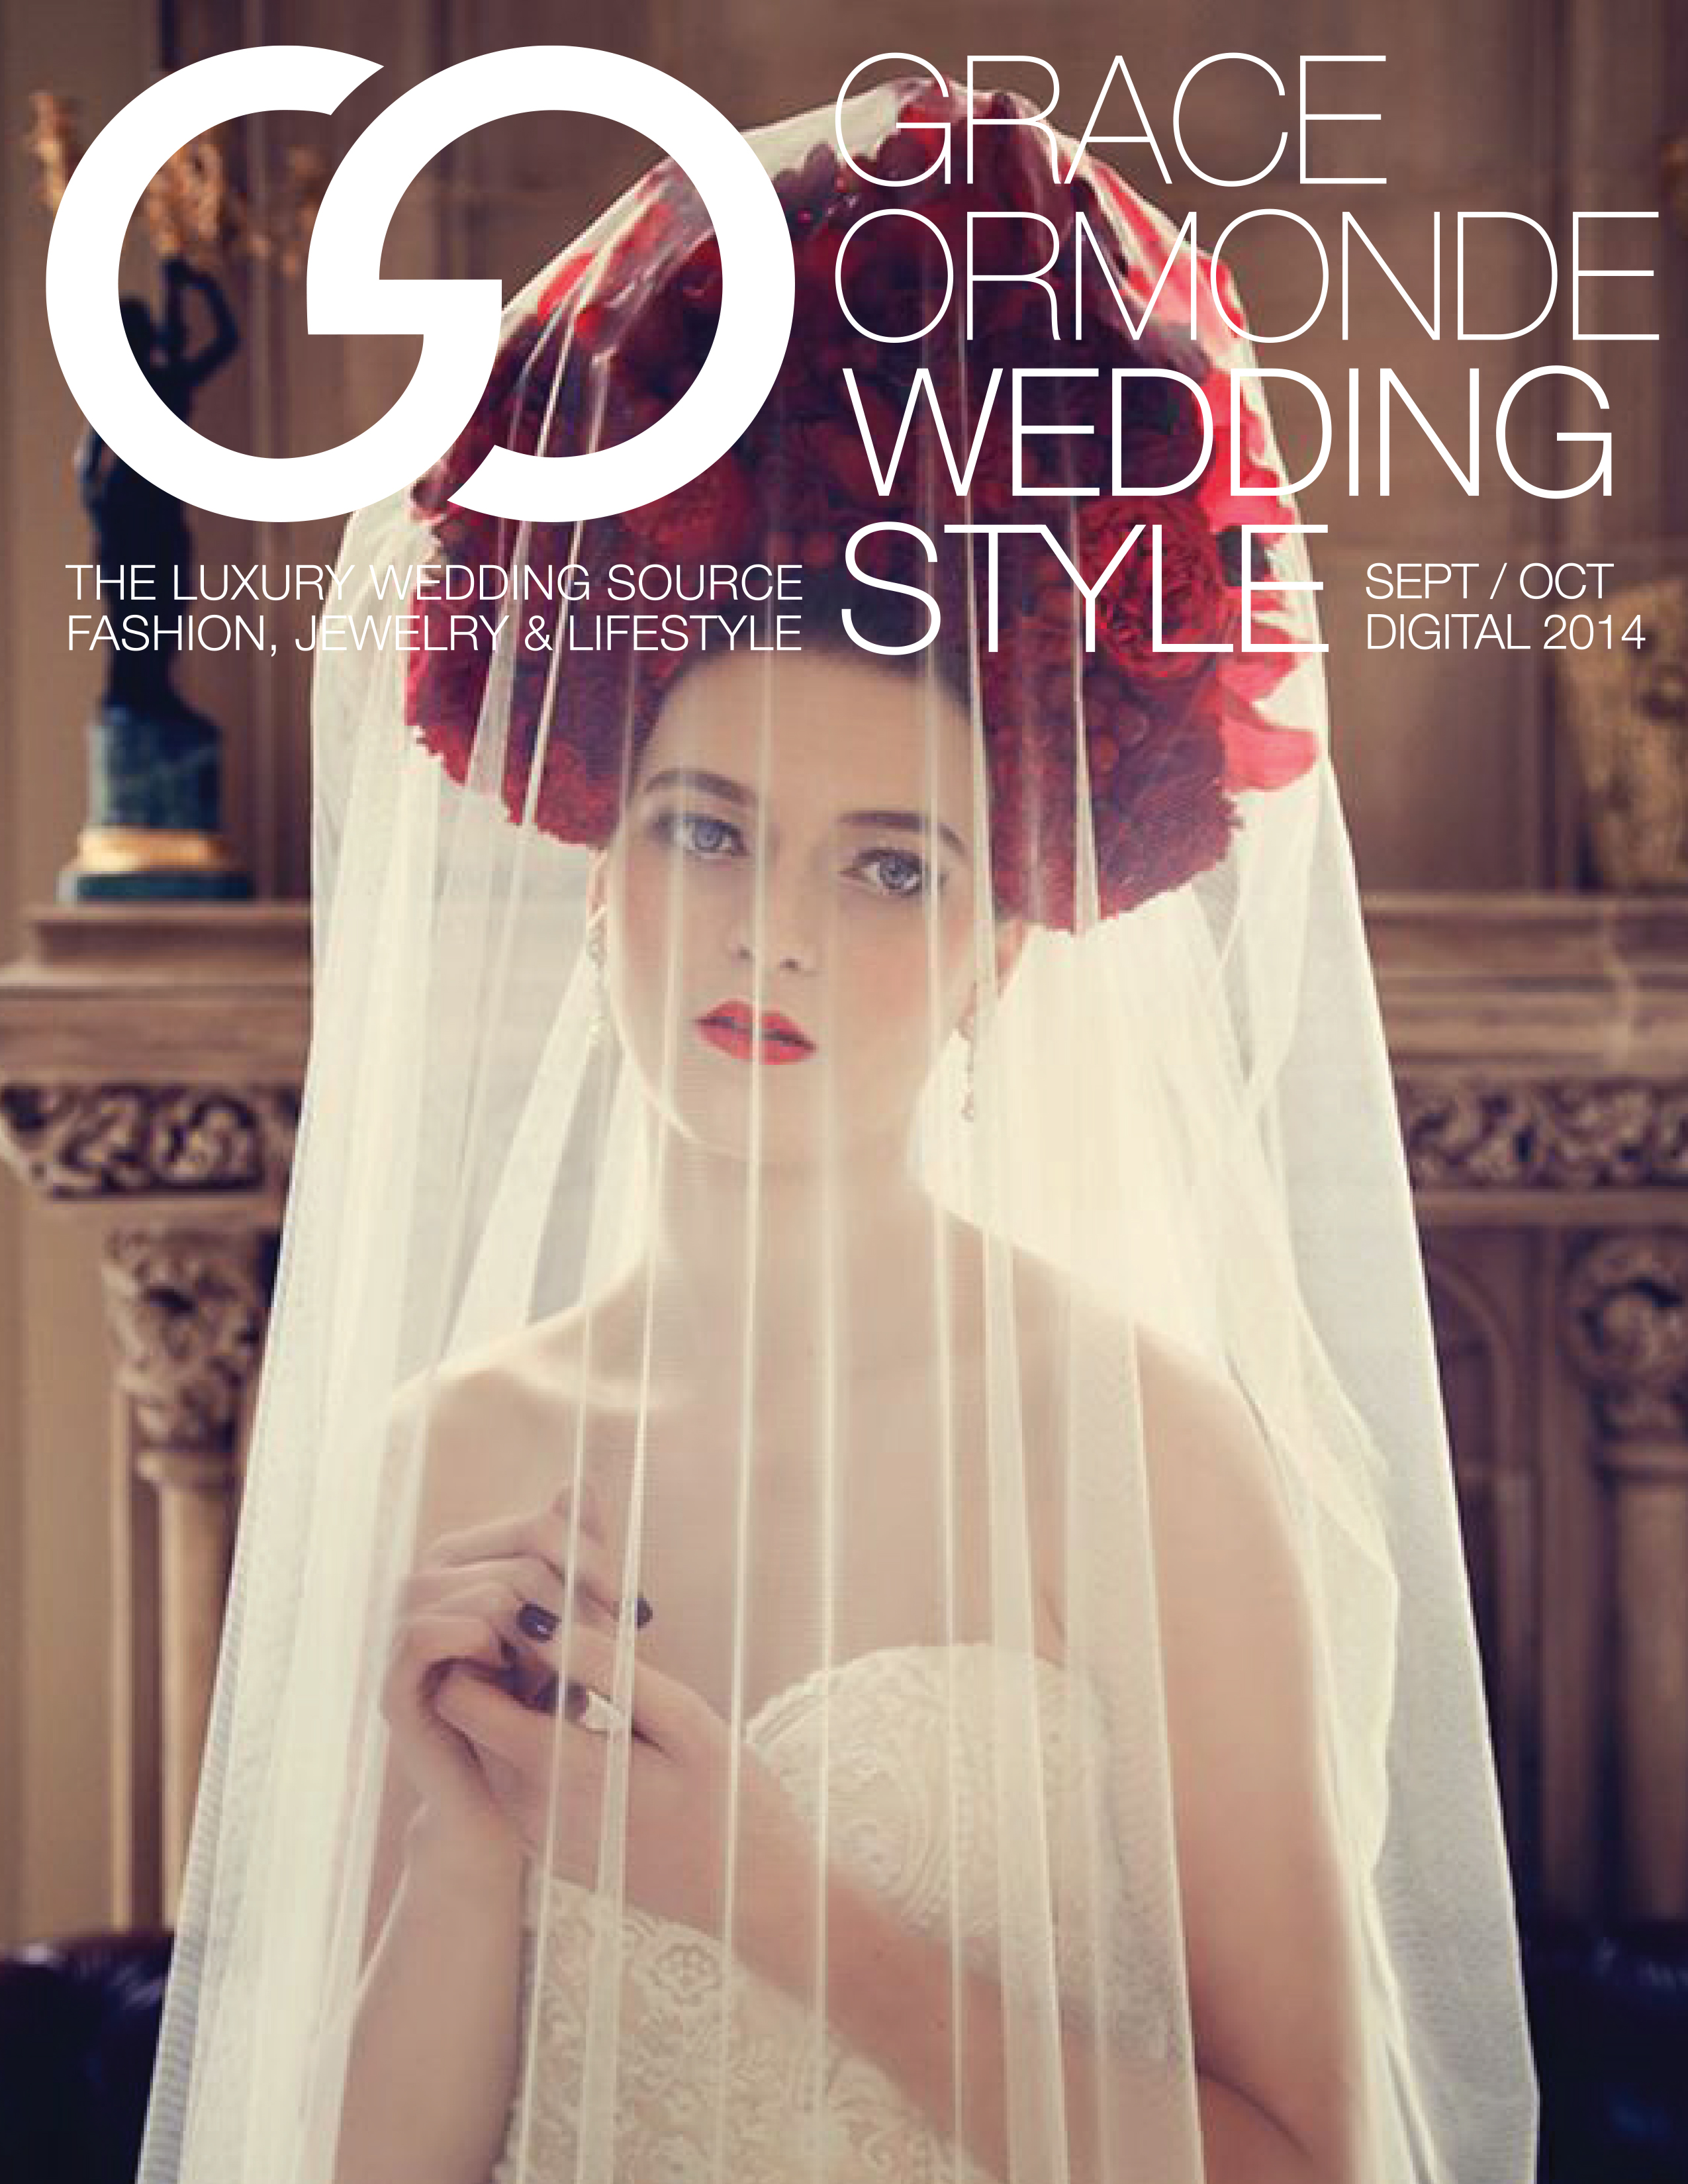 Image for Grace Ormonde Wedding Style, Sept/Oct 2014